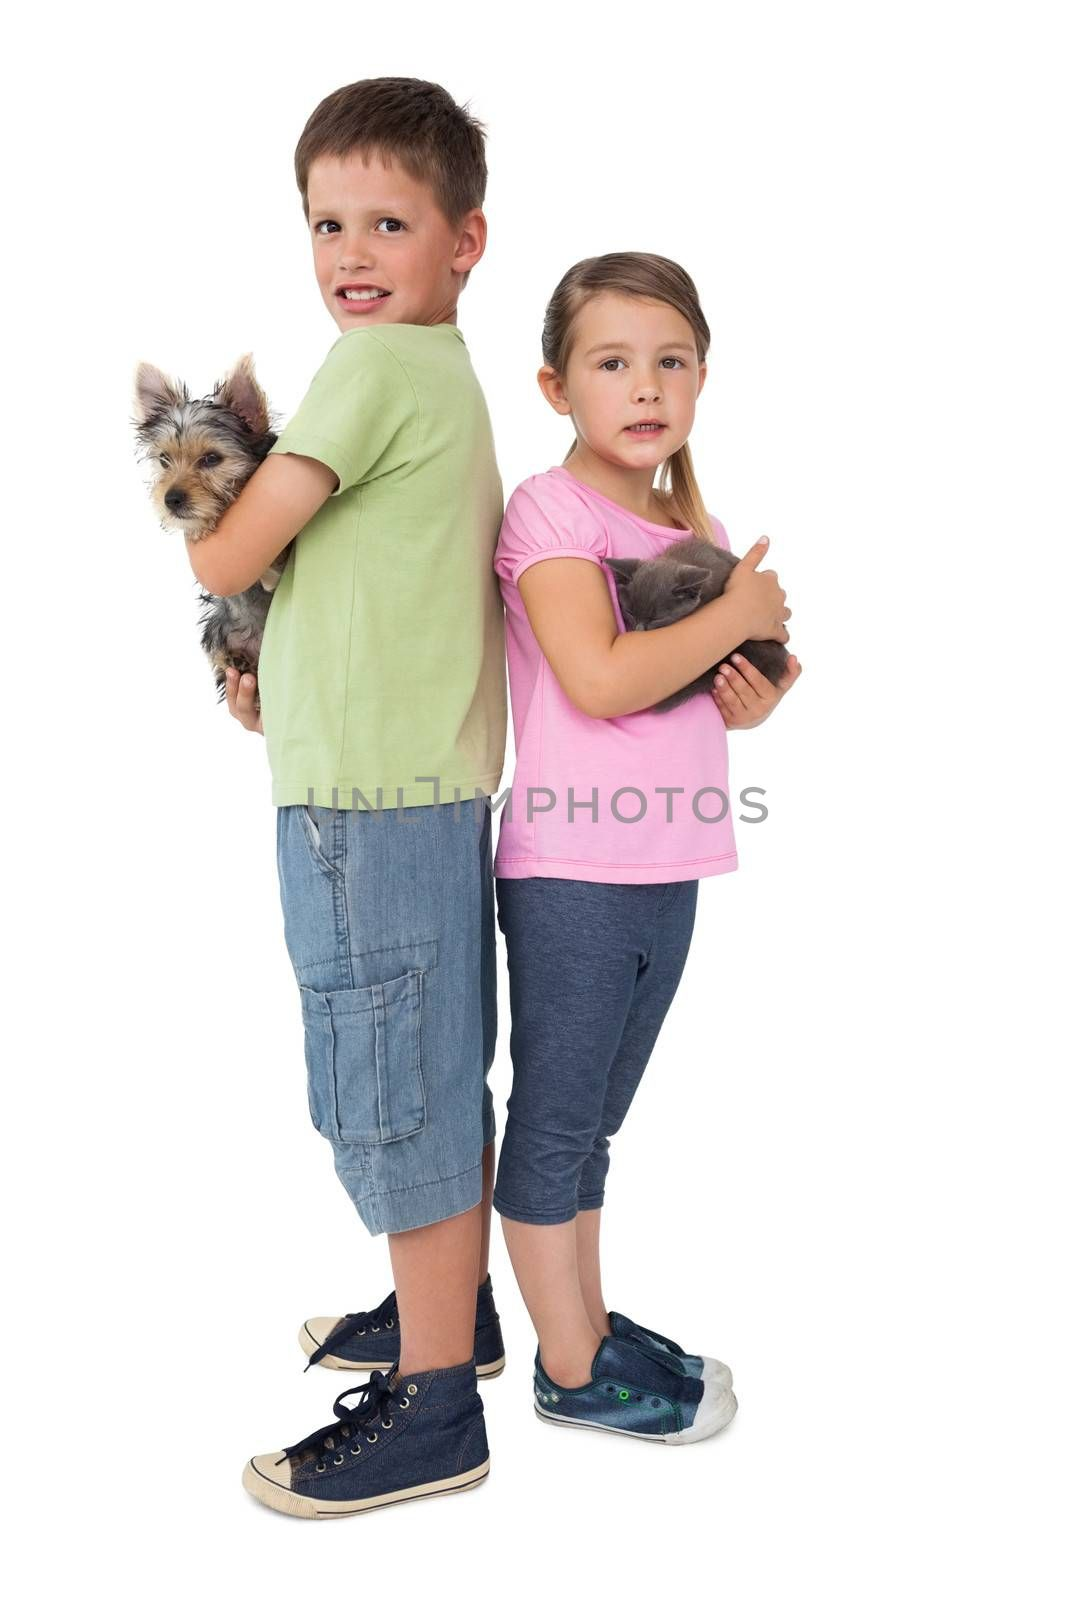 Siblings holding their pets and smiling at camera on white background